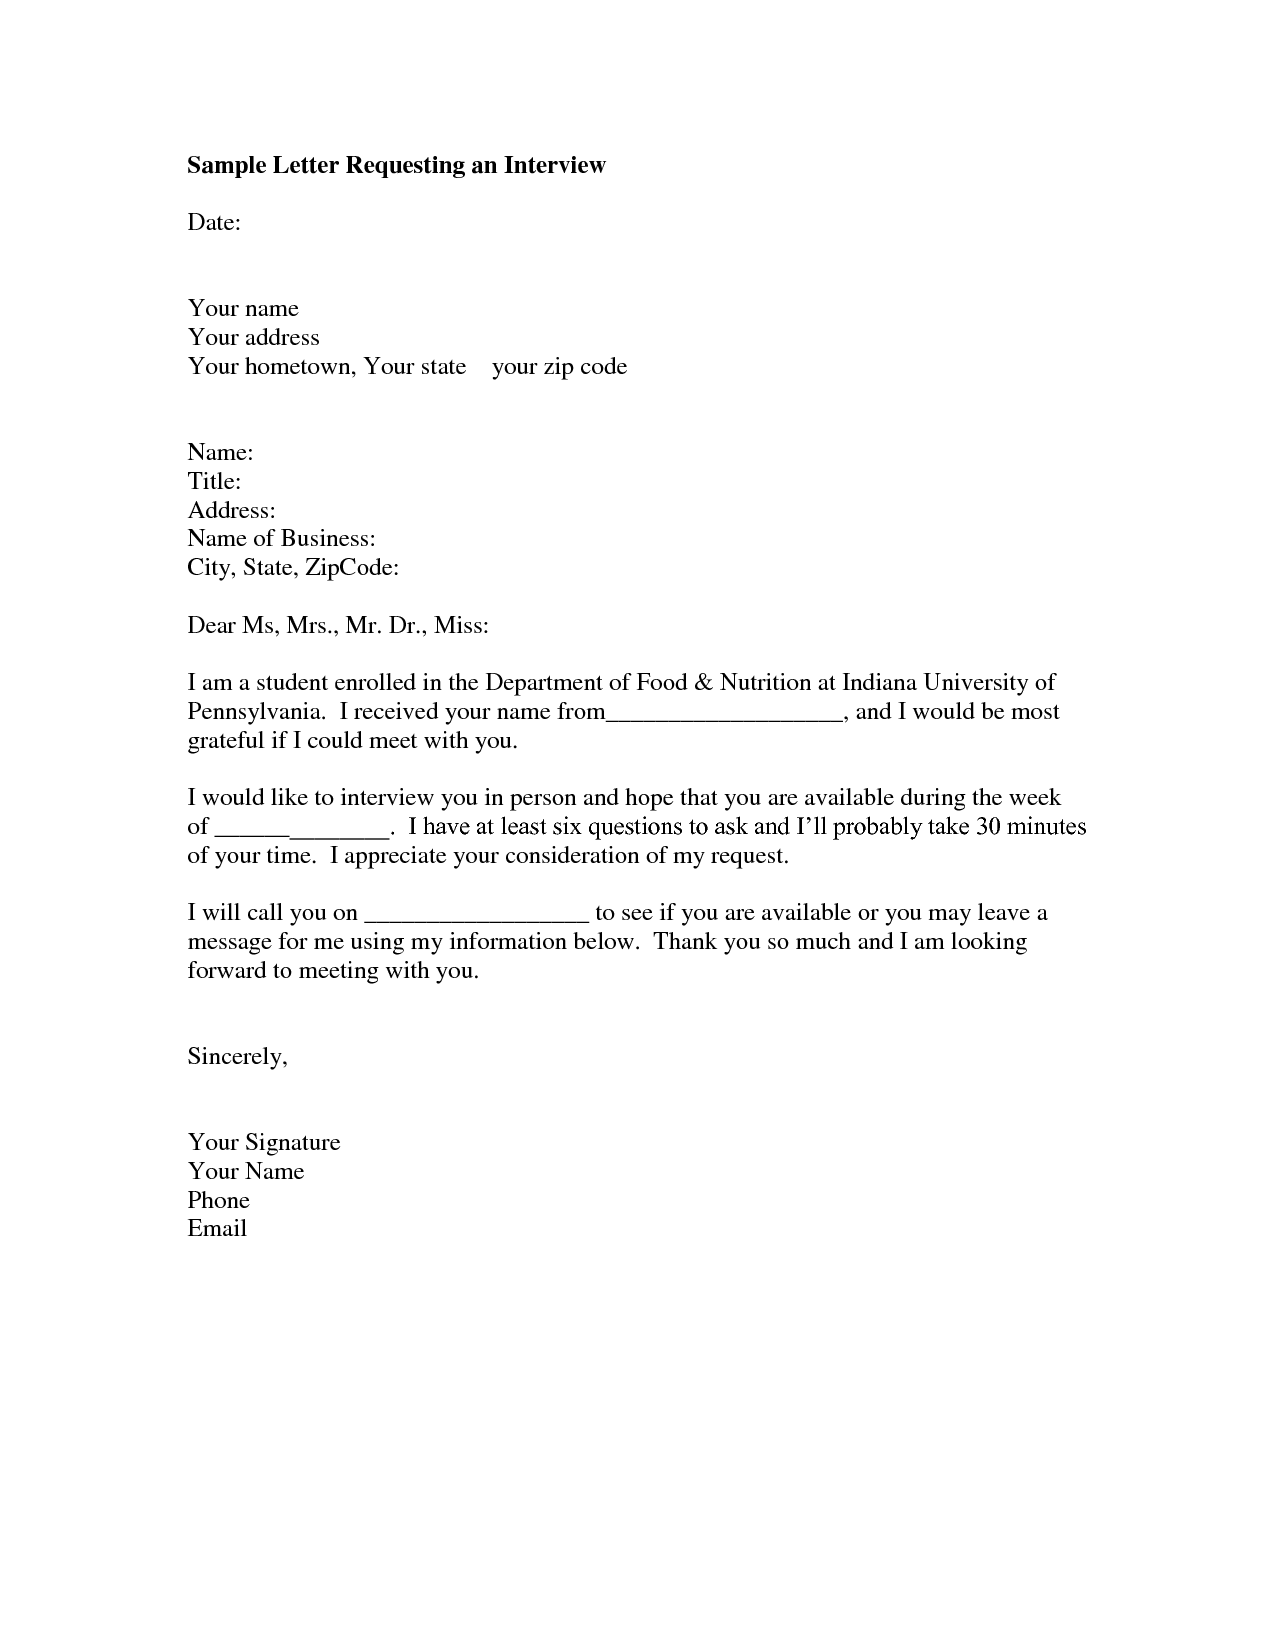 Interview request letter sample format of a letter you can use interview request letter sample format of a letter you can use to request an interview pronofoot35fo Images